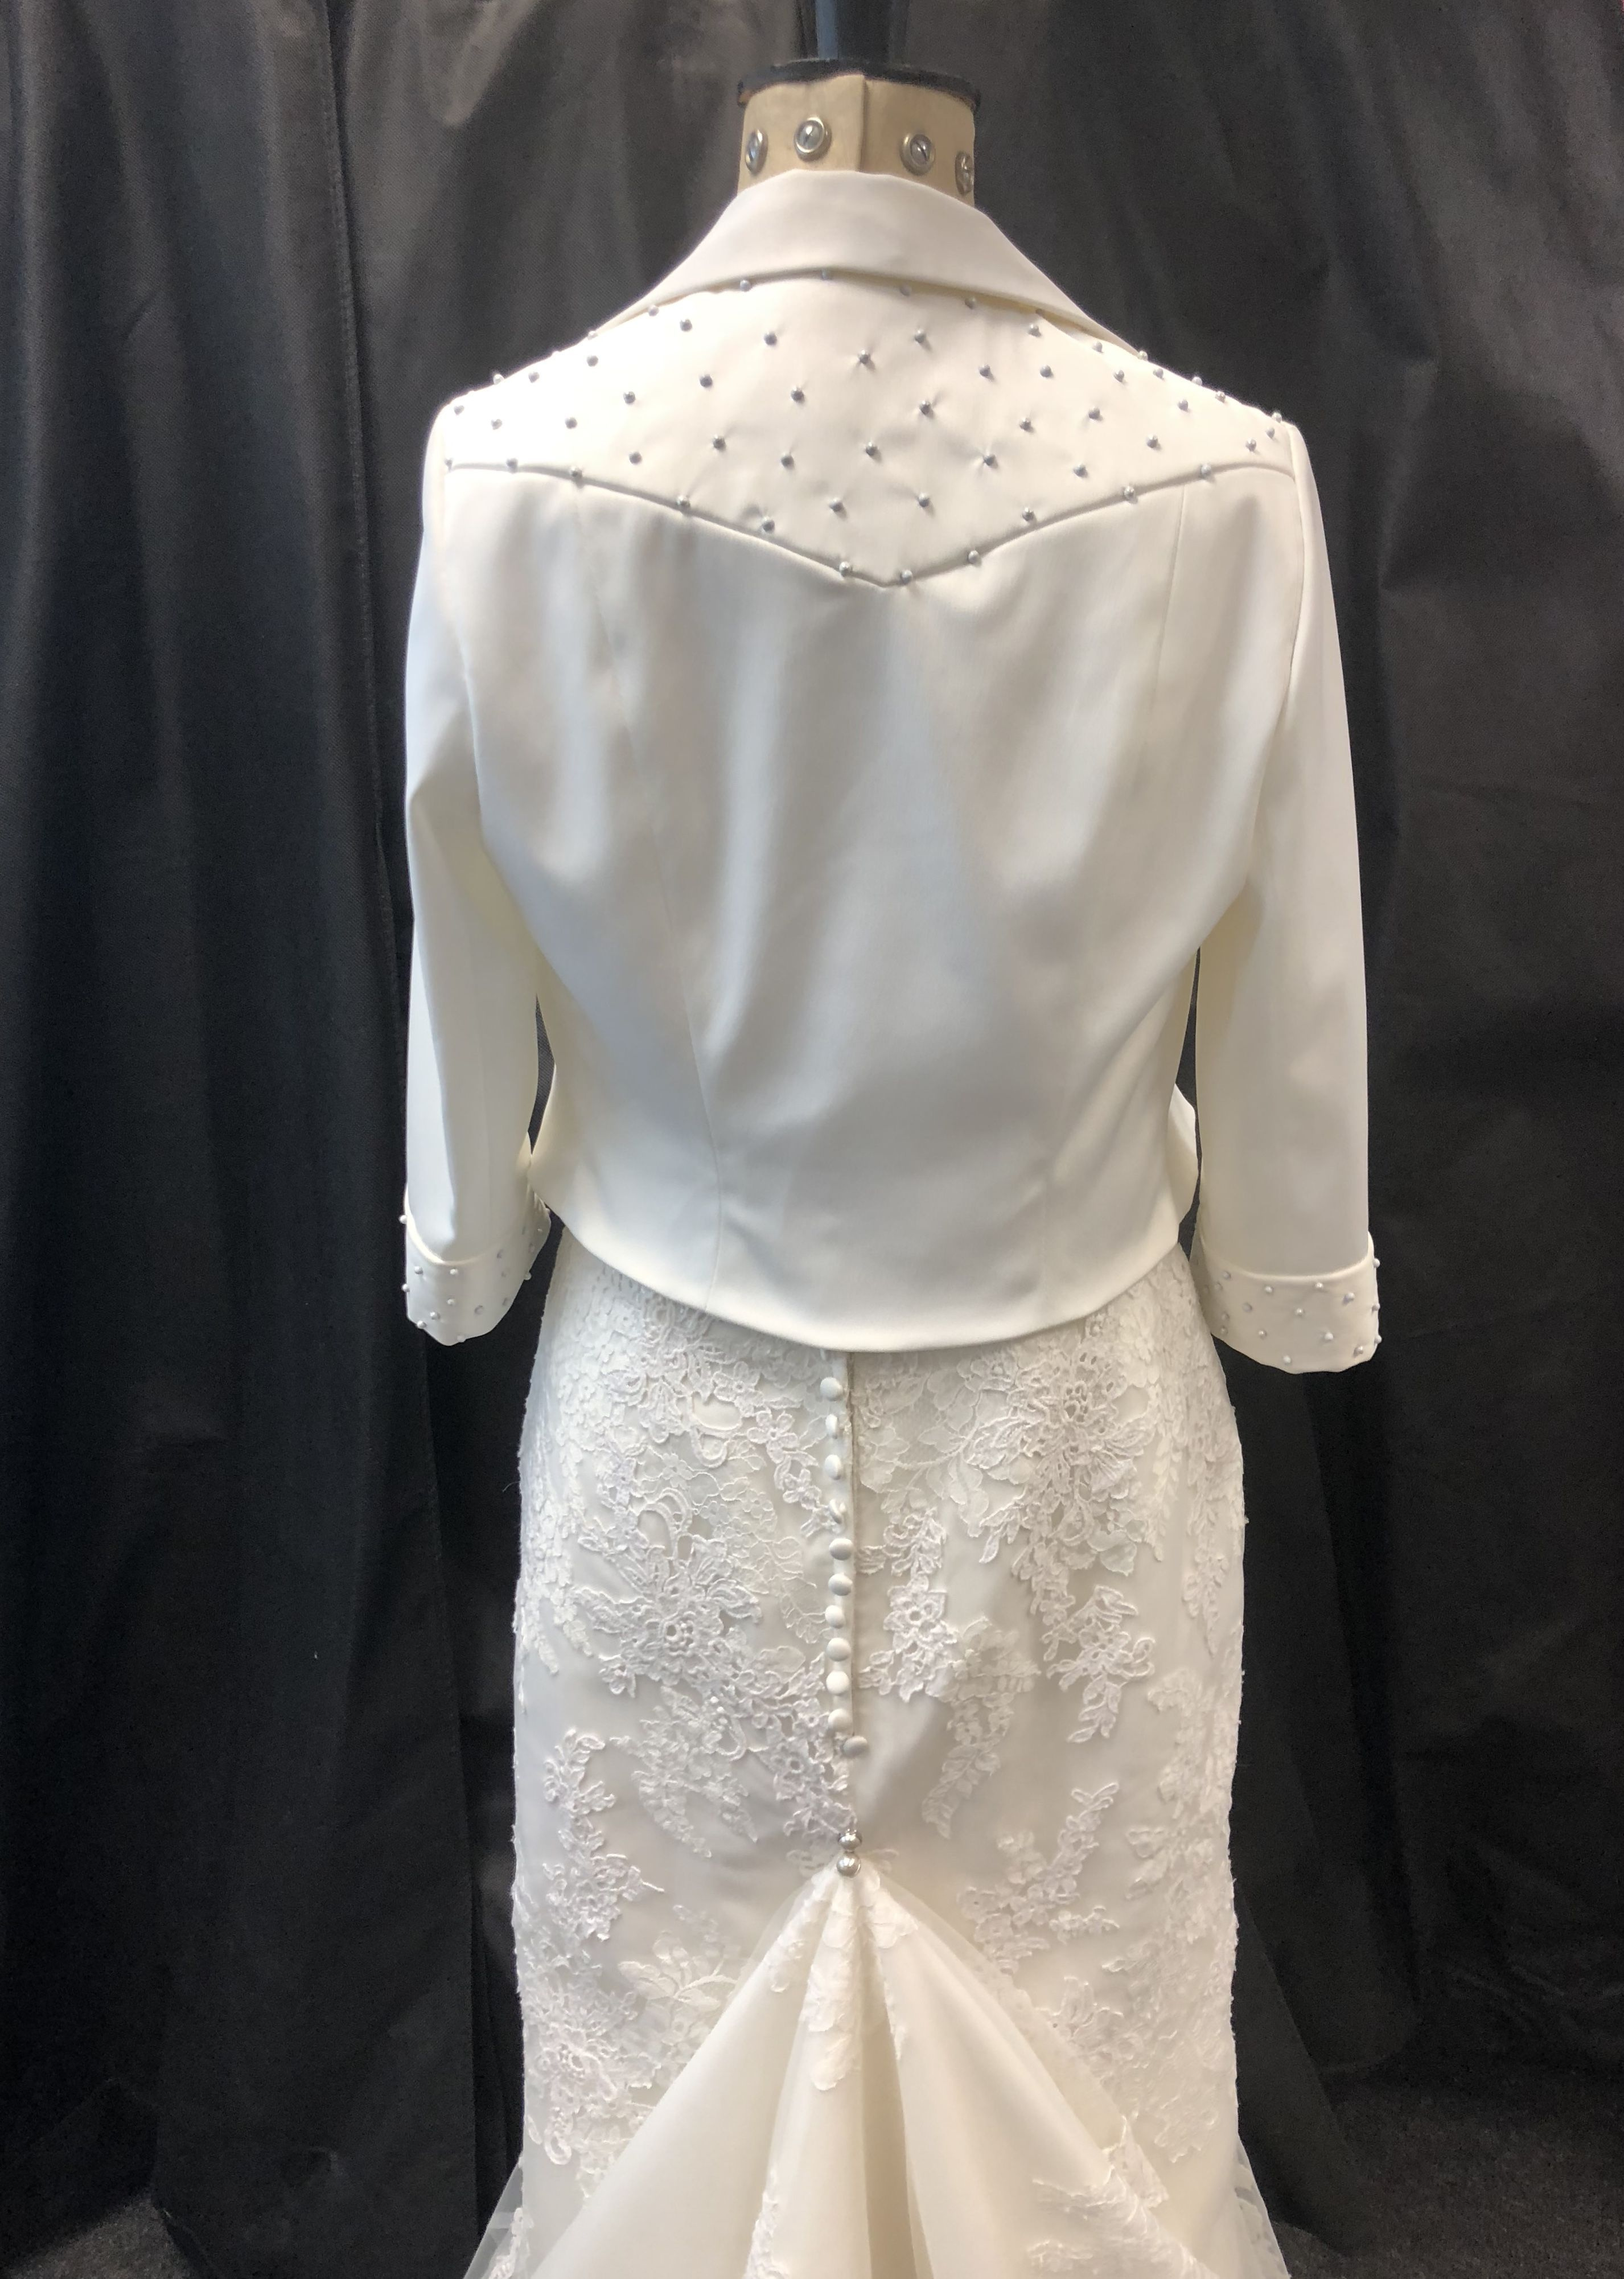 Simply Hook Your Train Up With A Trainloop See How Easy It Is Www Trainloop Com And Cover Up With A Wedding Dress Train Bustle Dress Train Wedding Dress Train